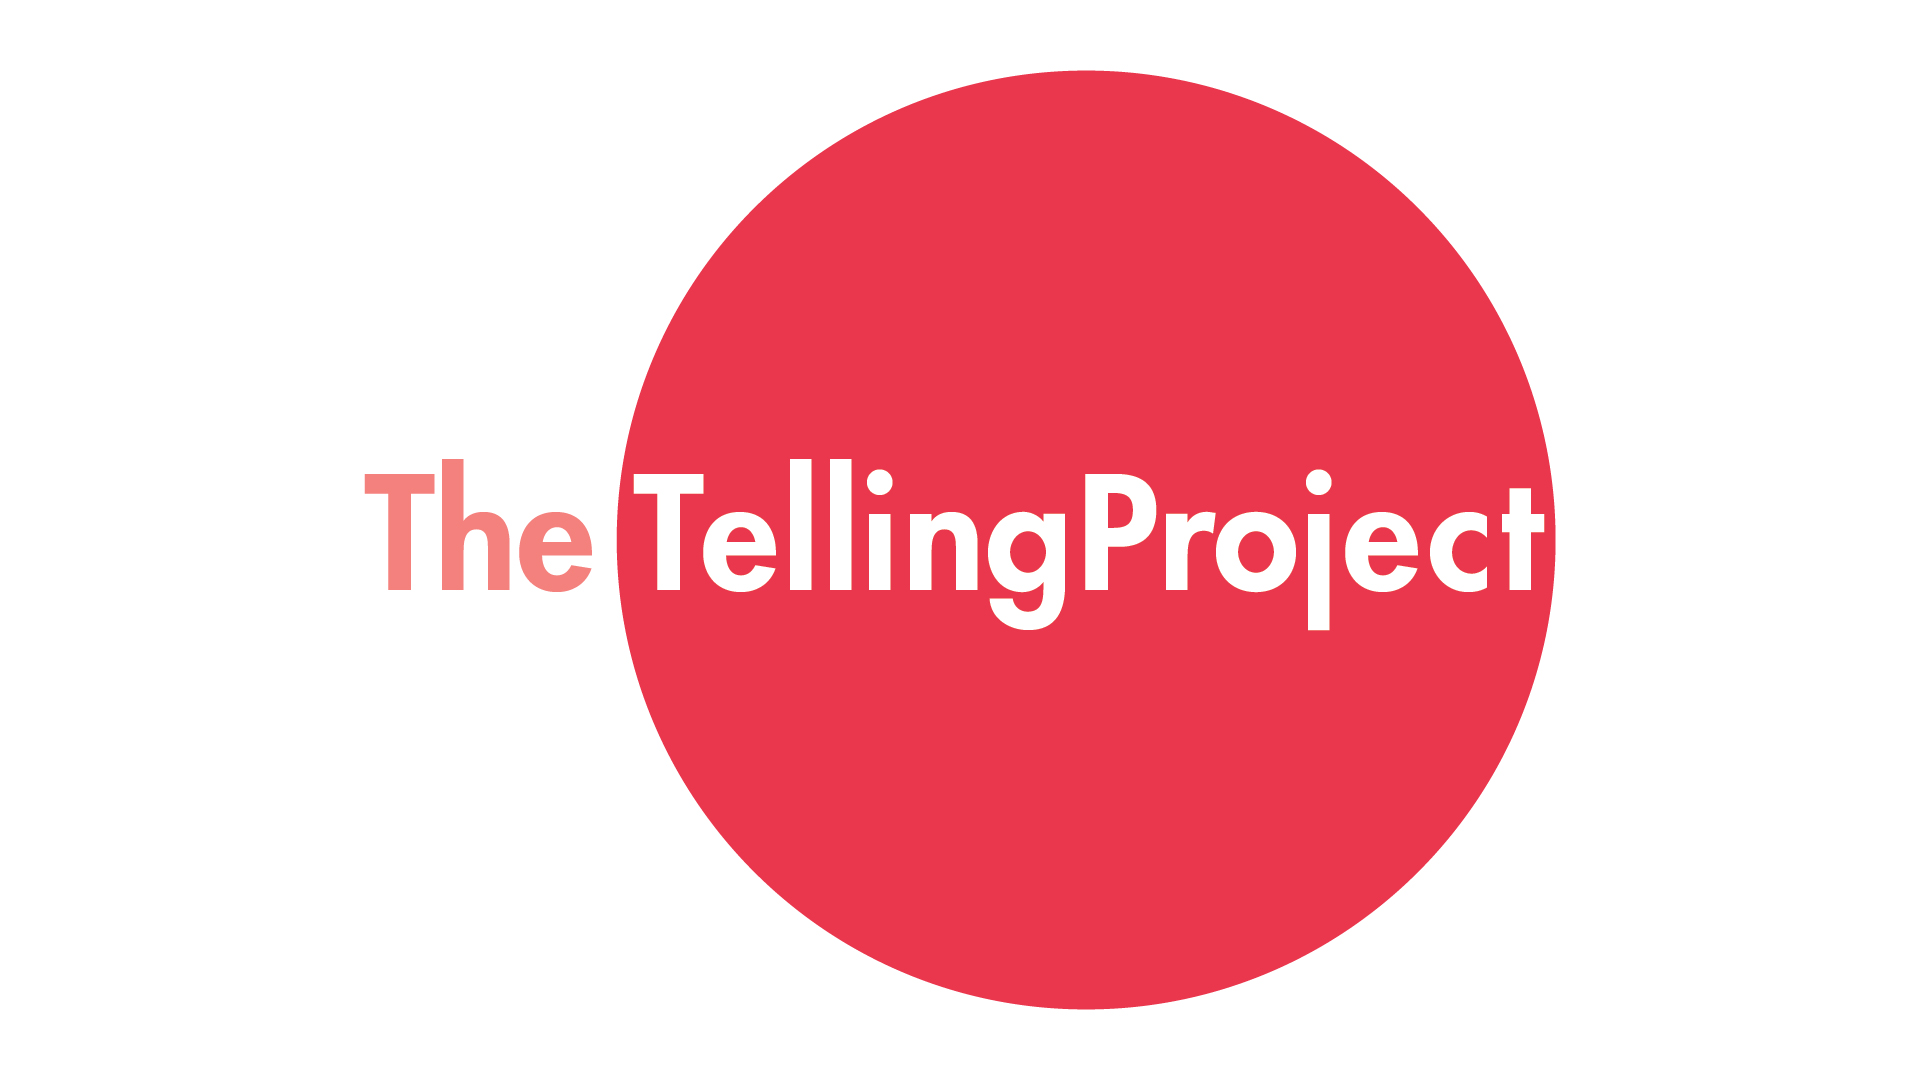 The Telling Project